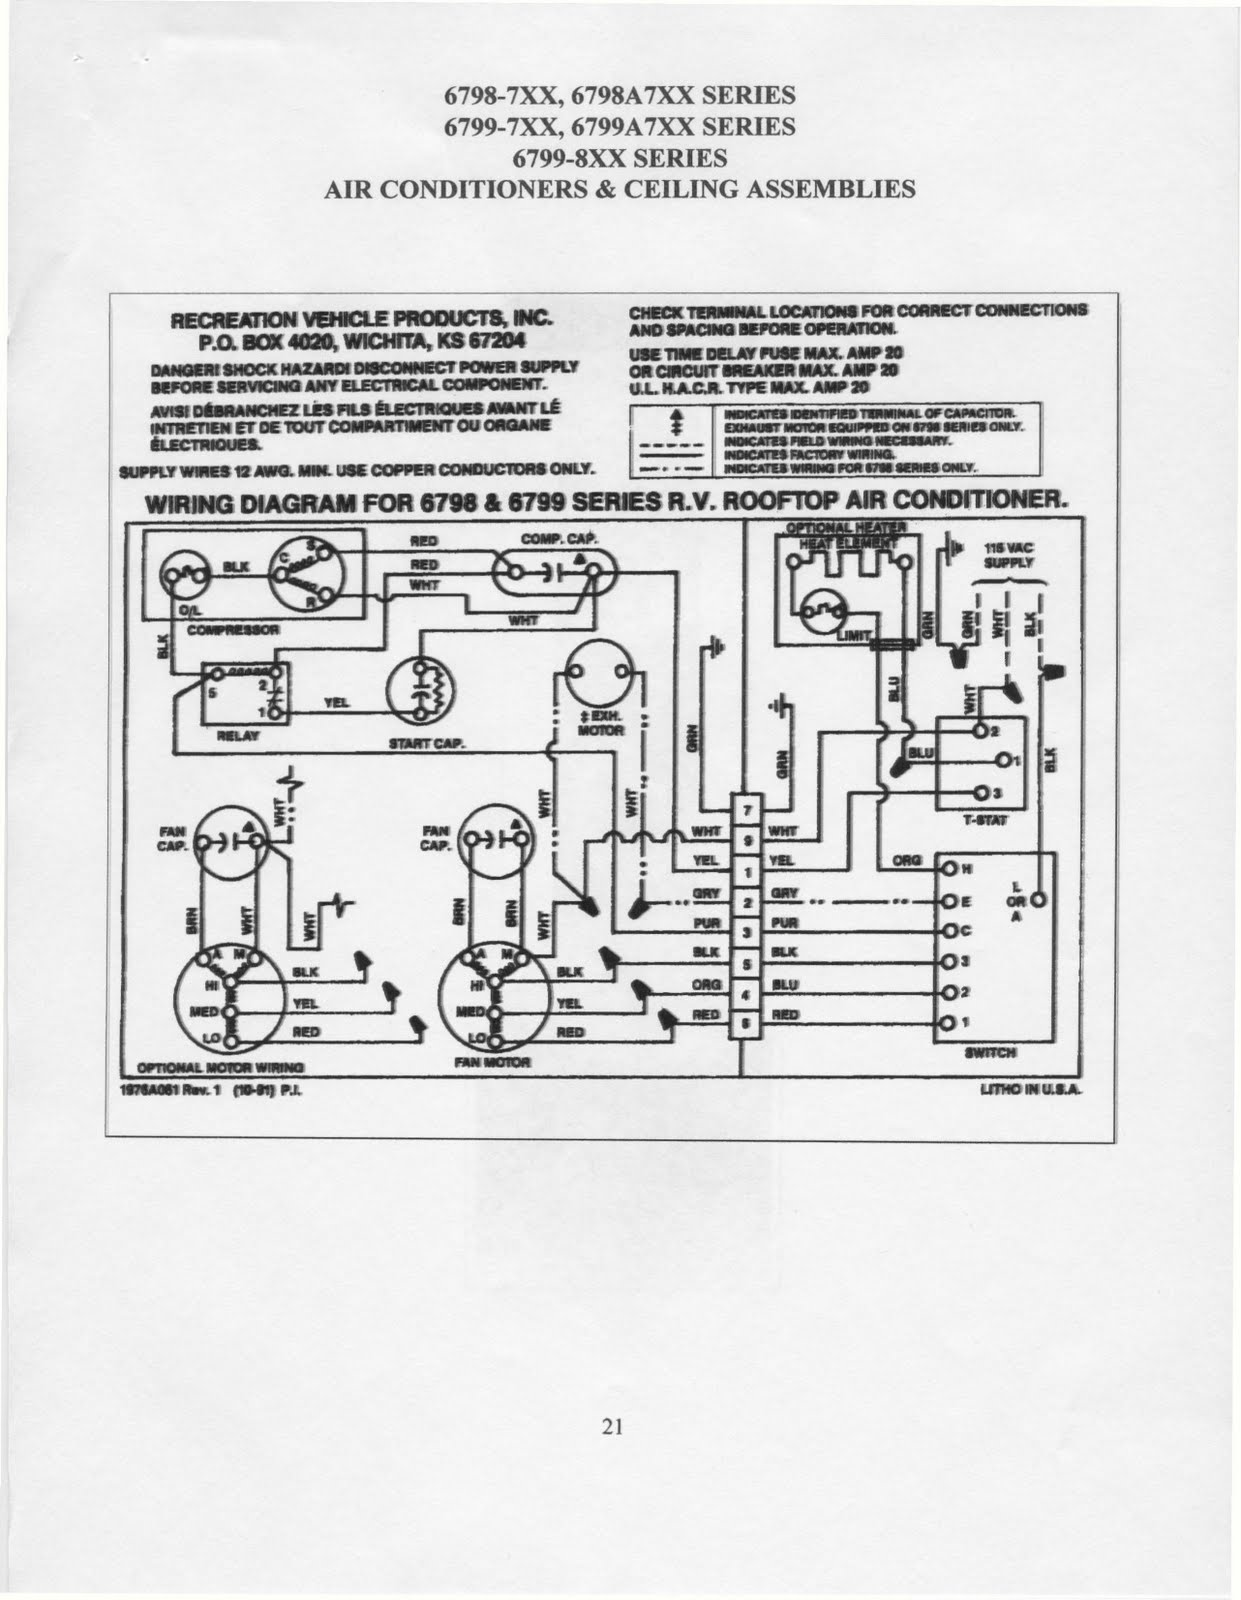 Fleetwood Rv Owners Manual - Wiring Diagrams • on coleman central air conditioning units, ac unit schematic diagram, rv air conditioner diagram, dometic air conditioner parts diagram, residential ac units diagram, saturn air conditioning diagram, central air electrical diagram, coleman ac compressor, coleman fleetwood wiring-diagram, coleman ac parts, chevy silverado air conditioning diagram, coleman ac motor, coleman camping trailers, goodman air conditioner schematic diagram, coleman rv ac units, coleman generator parts diagram, typical air conditioner diagram, coleman ac thermostat, coleman rv ac diagram, coleman camper thermostat,